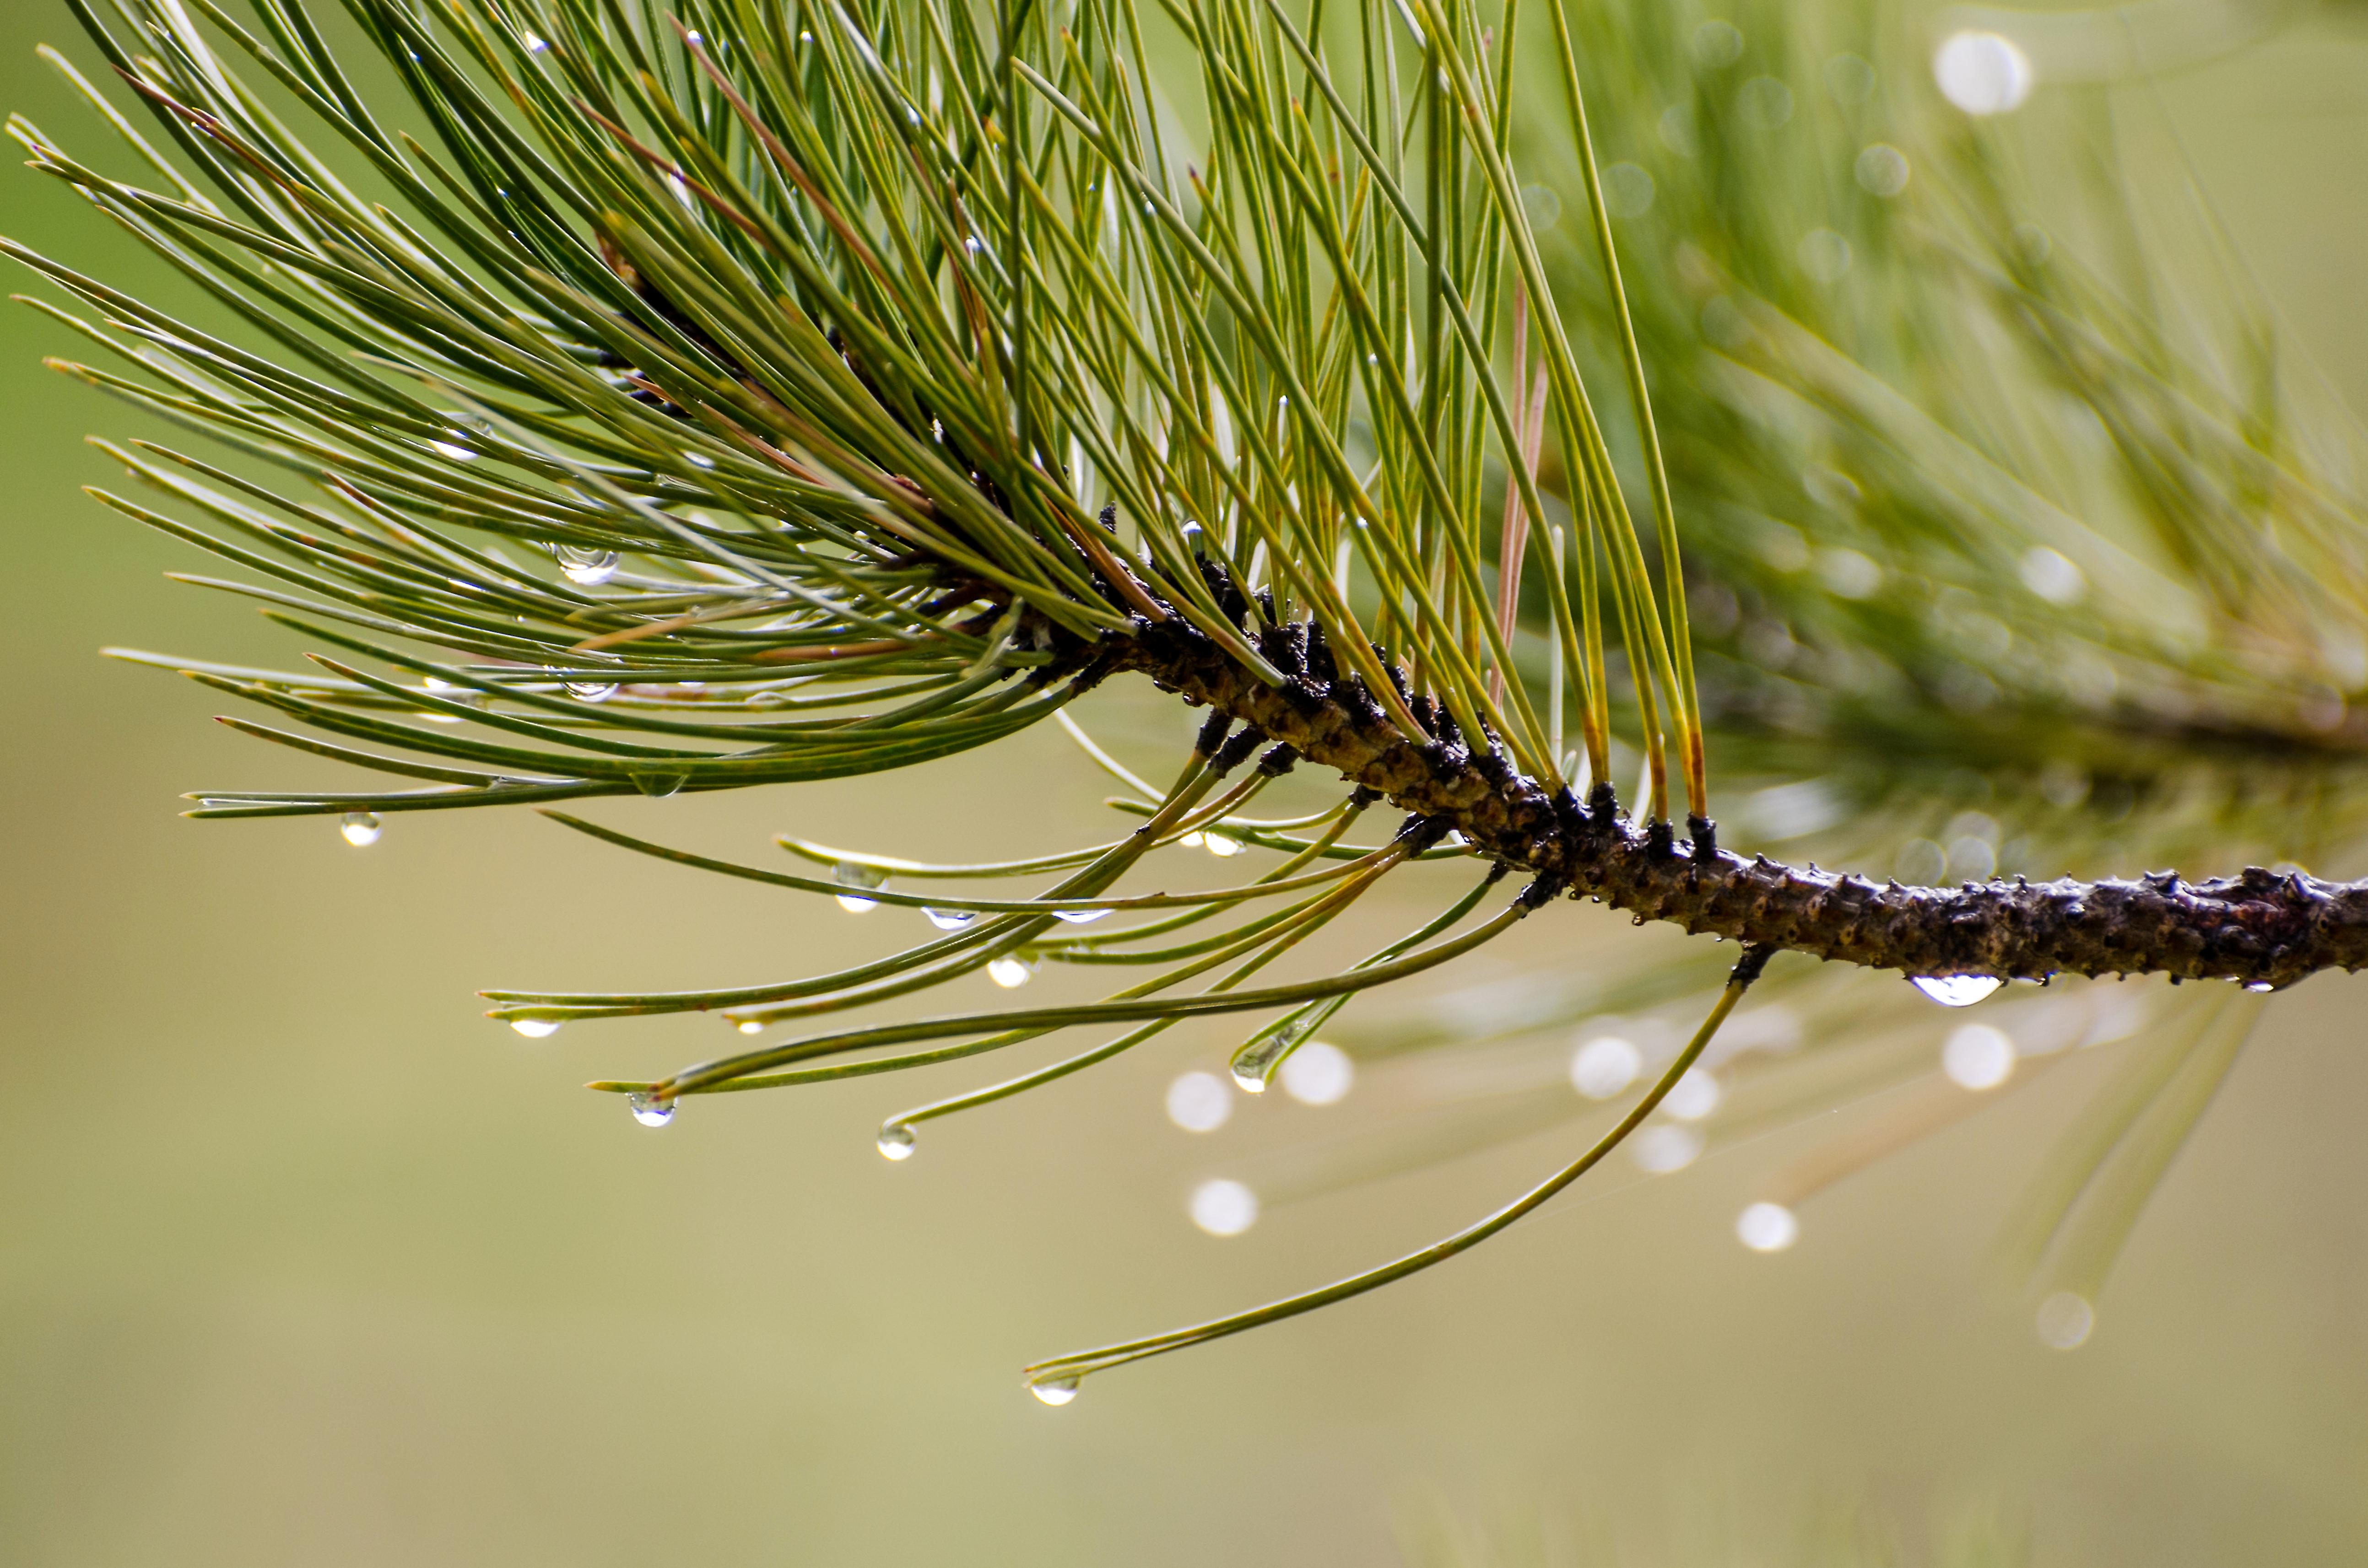 free picture  nature  pine  tree  conifer  plant  dew